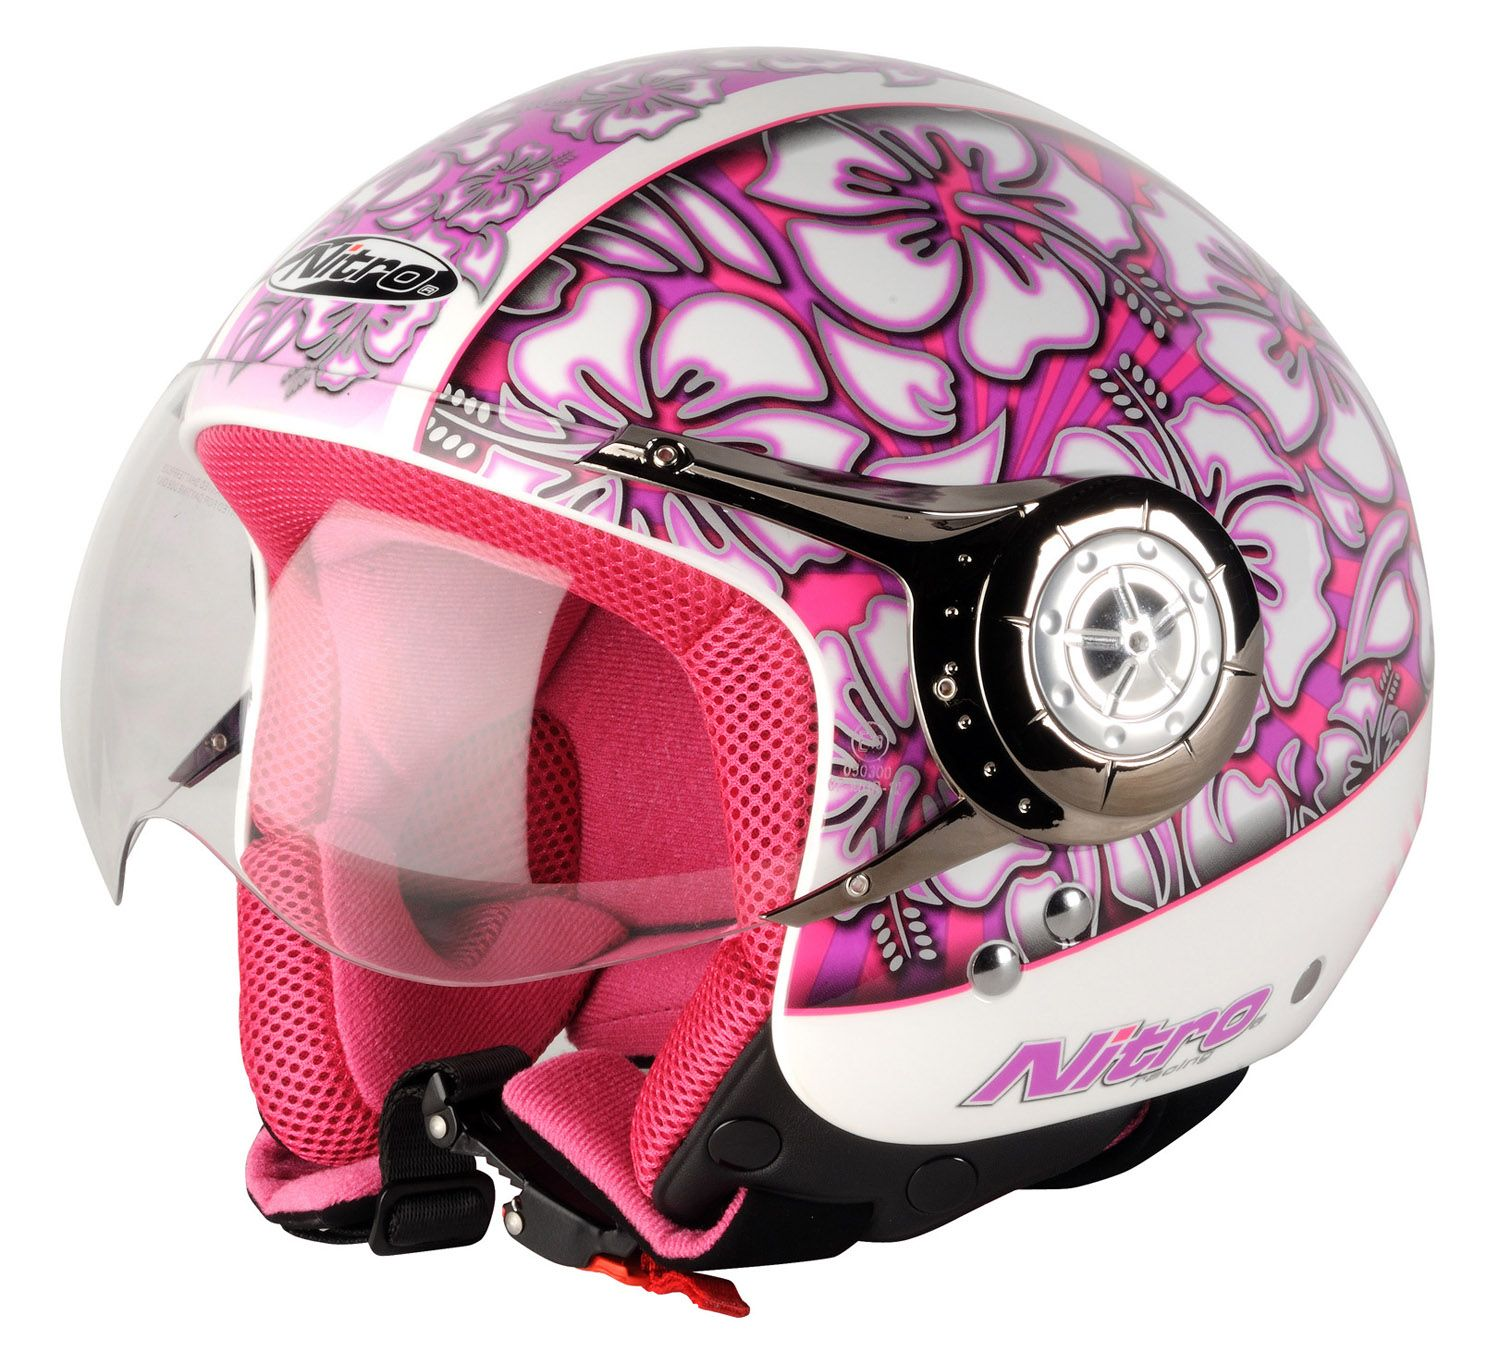 Pin By The Sizzeled On Motorcycle Mega Store Motorcycle Girl Helmet Motorcycle Helmets